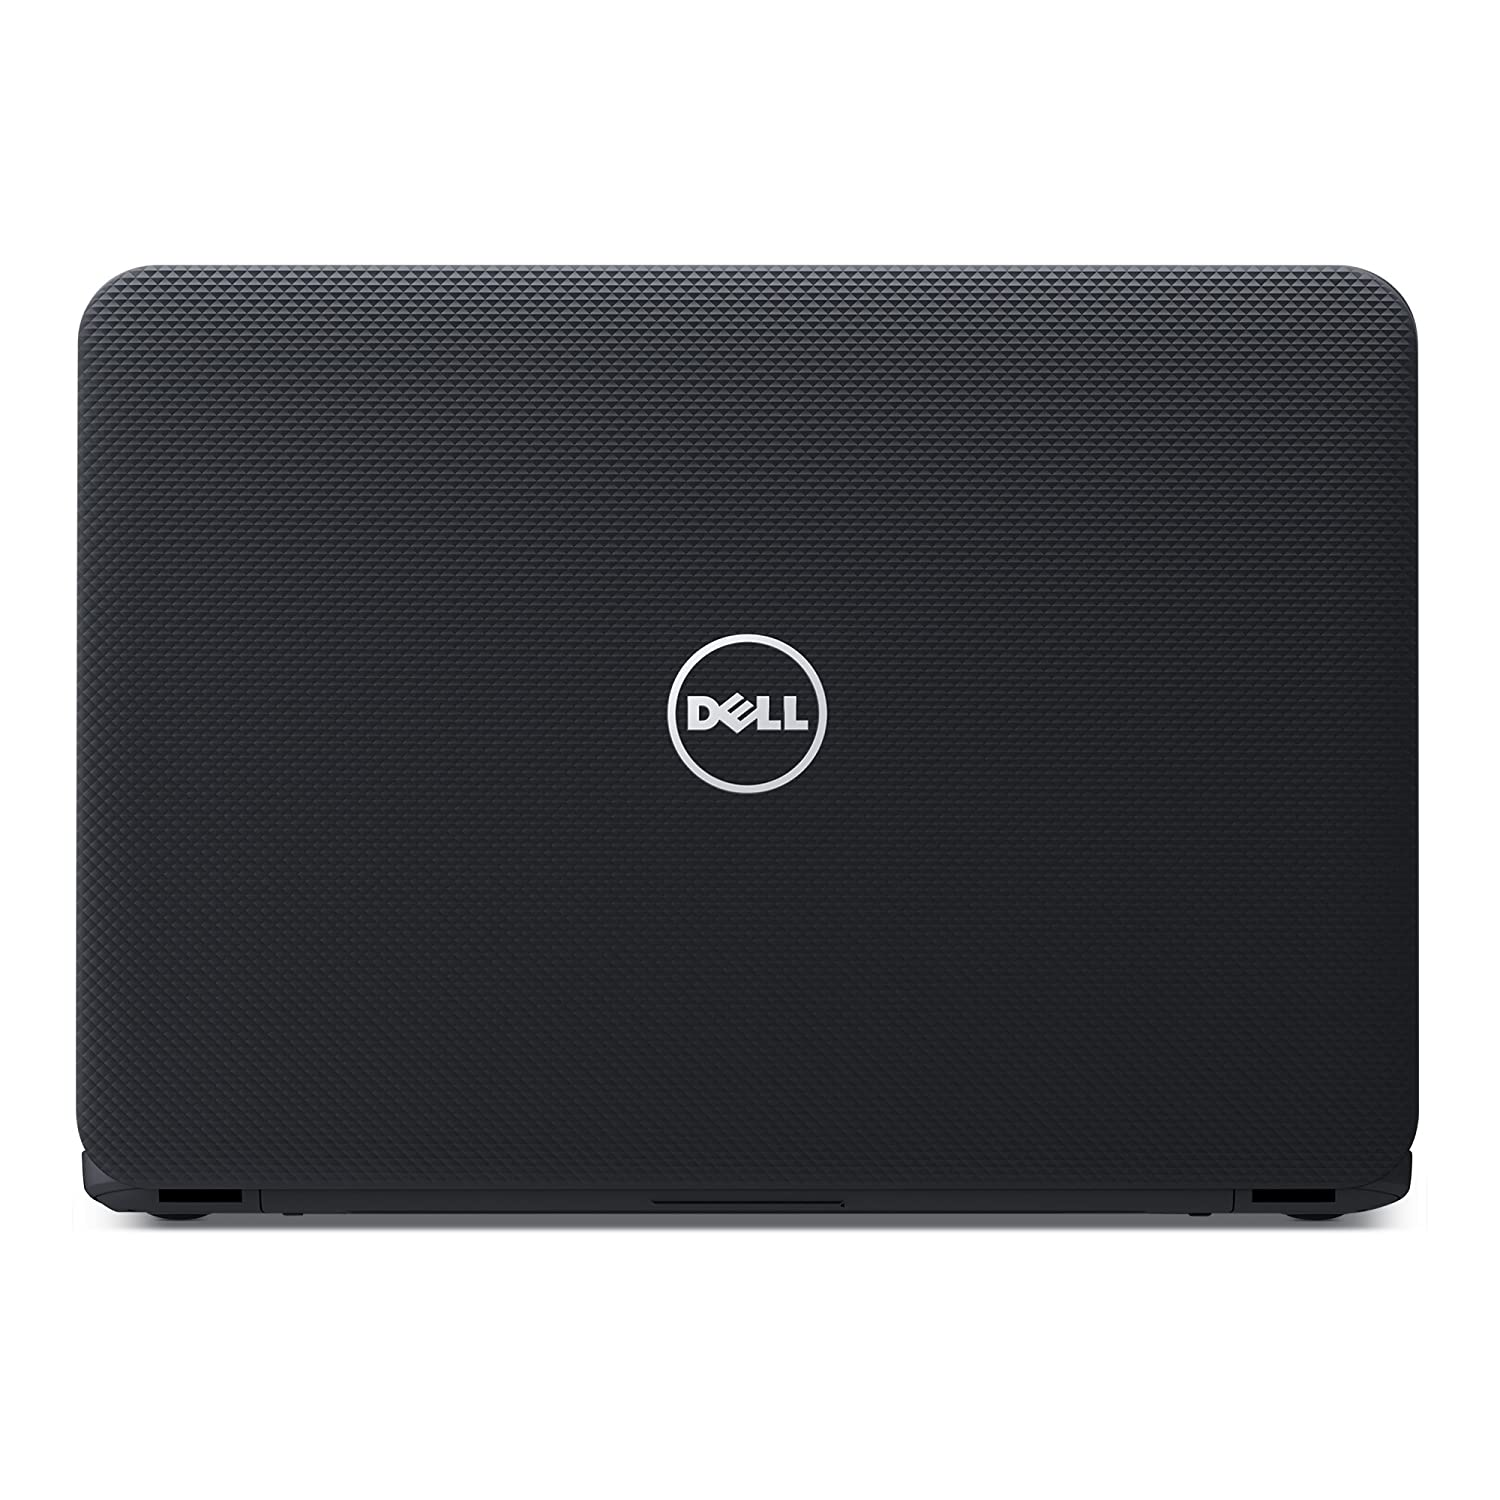 Dell-Inspiron-15-6-Inch-Touchscreen-Laptop-i15RVT-6195BLK-